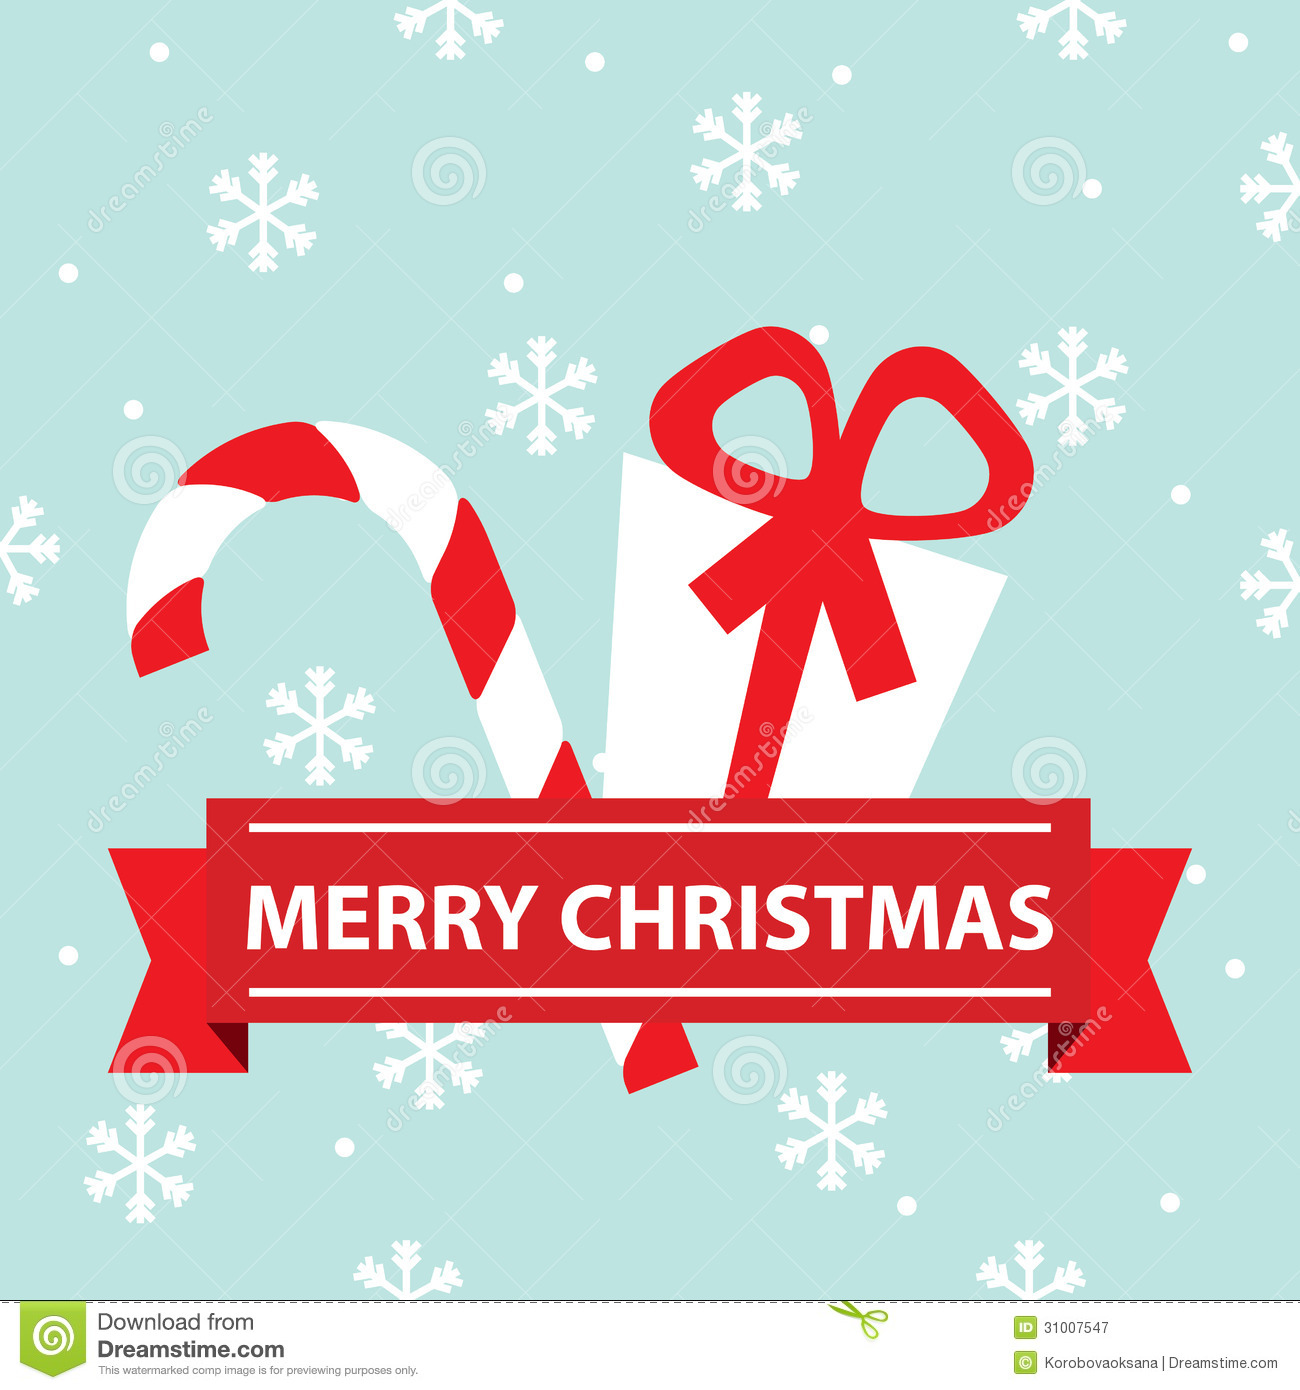 Bon Vector Merry Christmas Card. Funny, Elements.